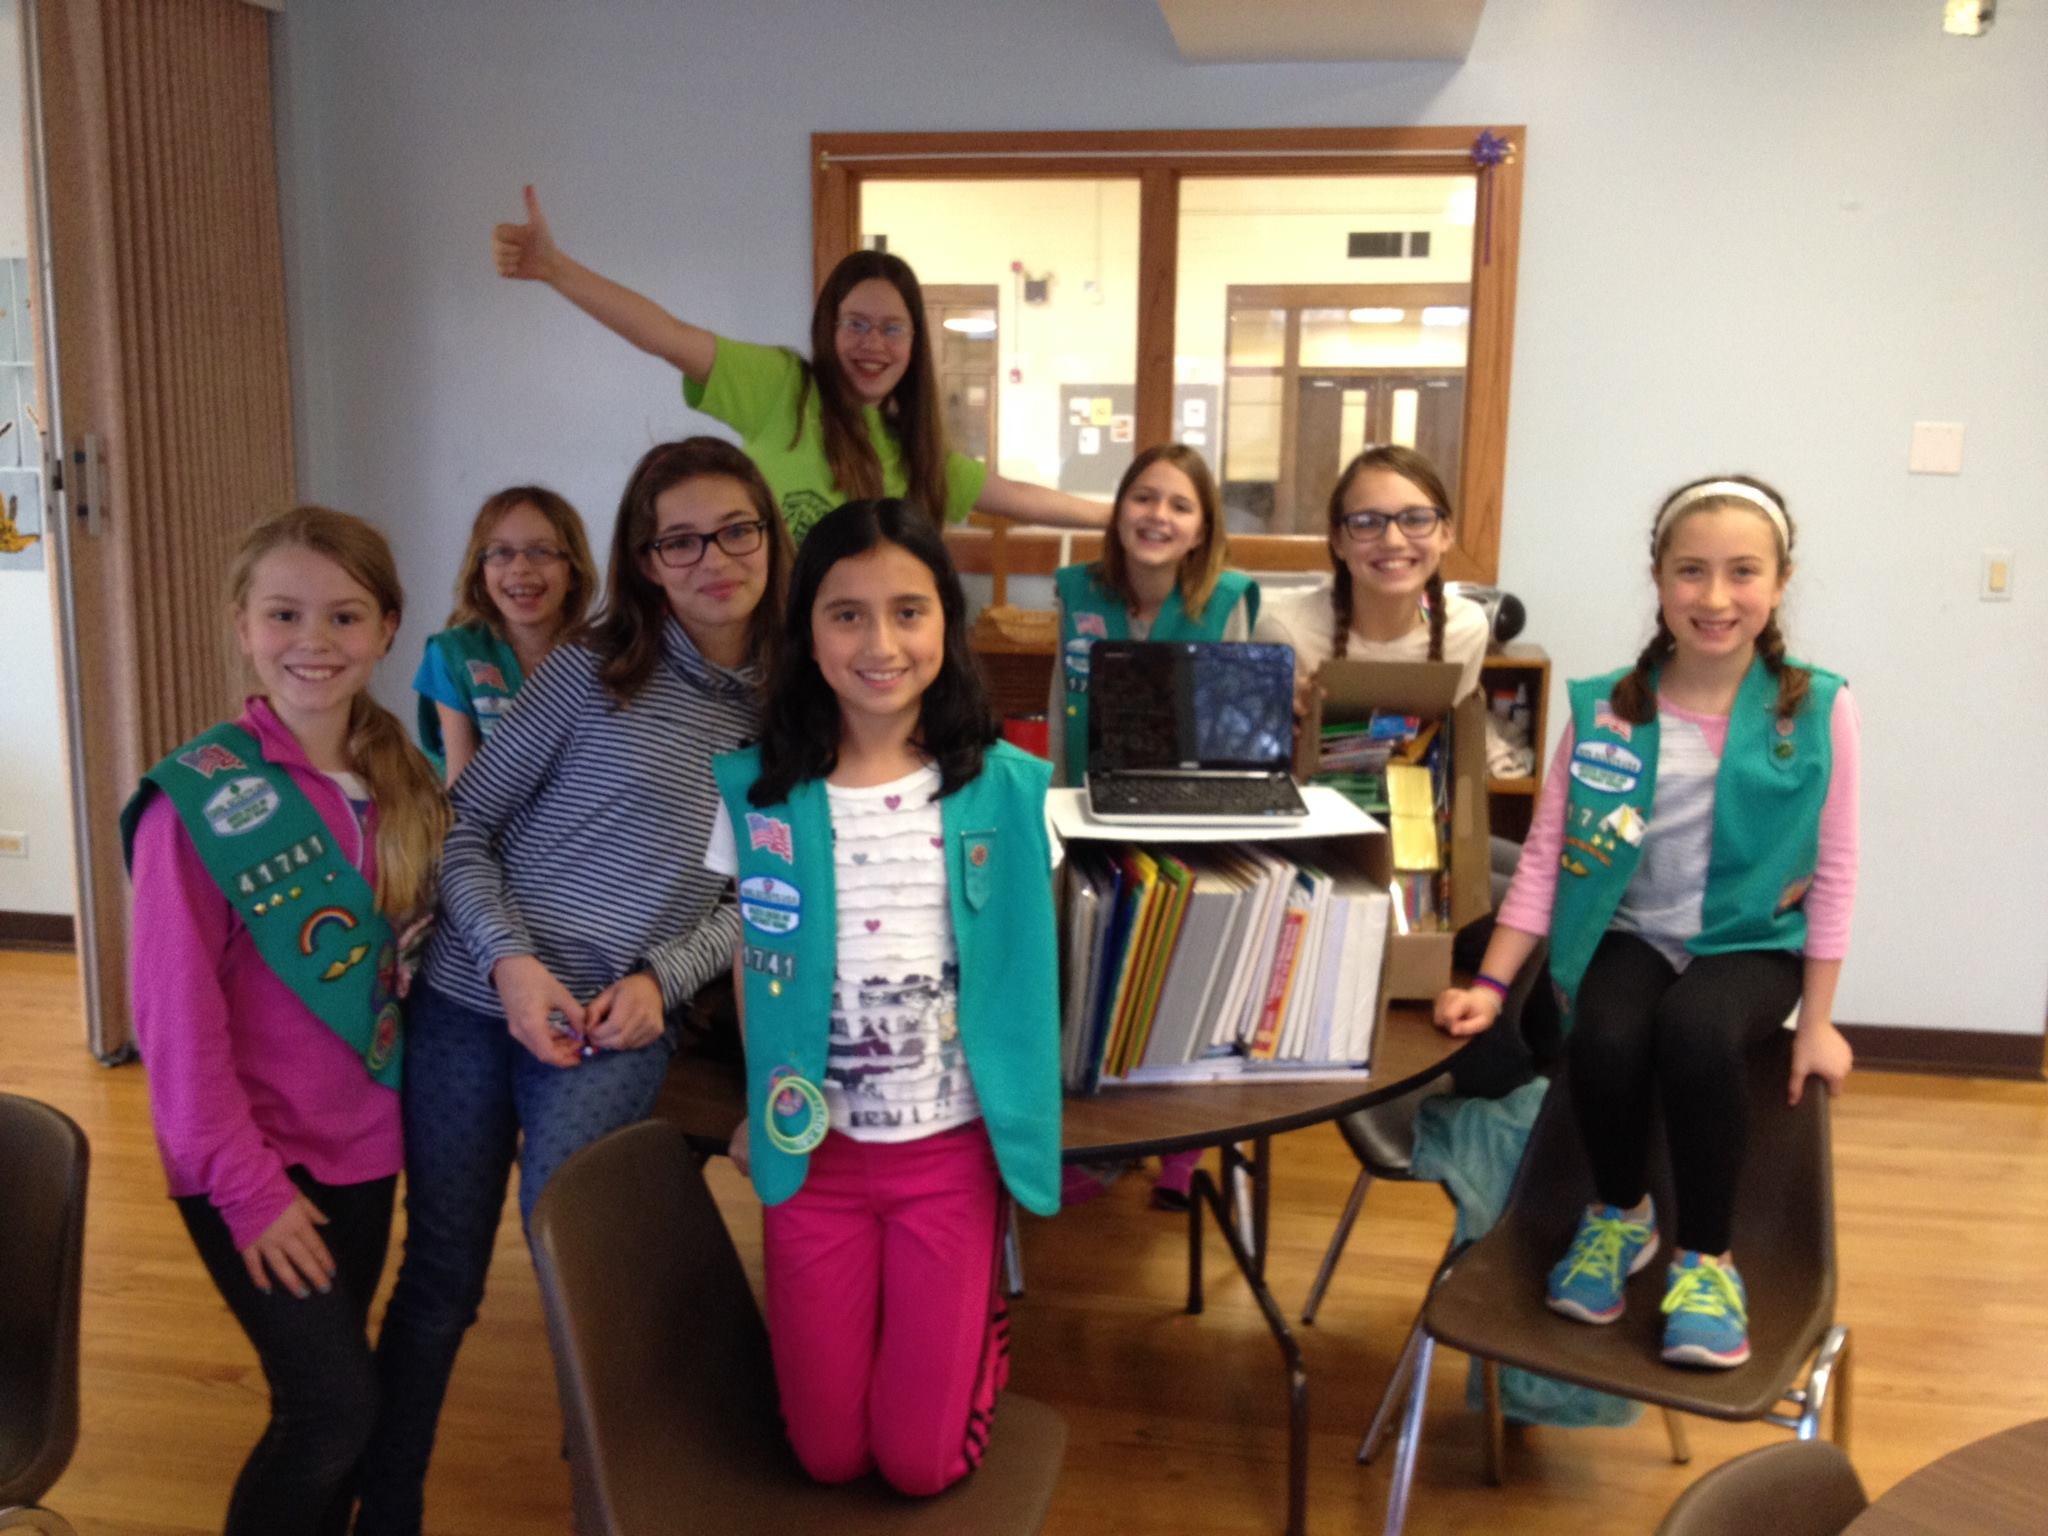 Glenview Girl Scout Troop 41741   - The troop collected 400+ items, school supplies & a laptop.